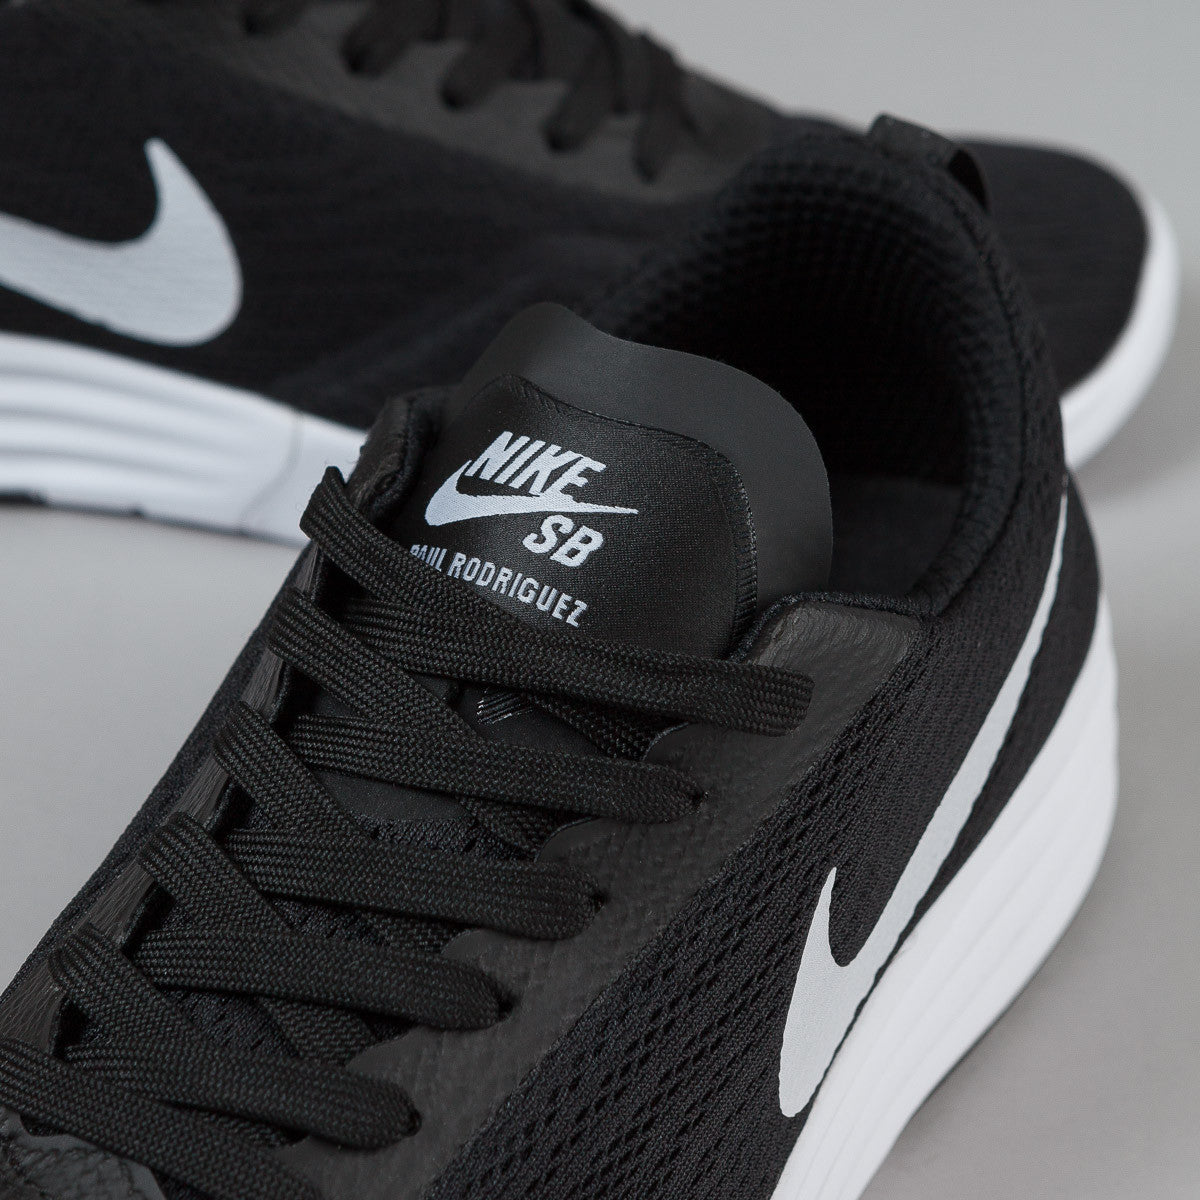 ... Nike SB Paul Rodriguez 9 R/R Shoes - Black / White - Black ...